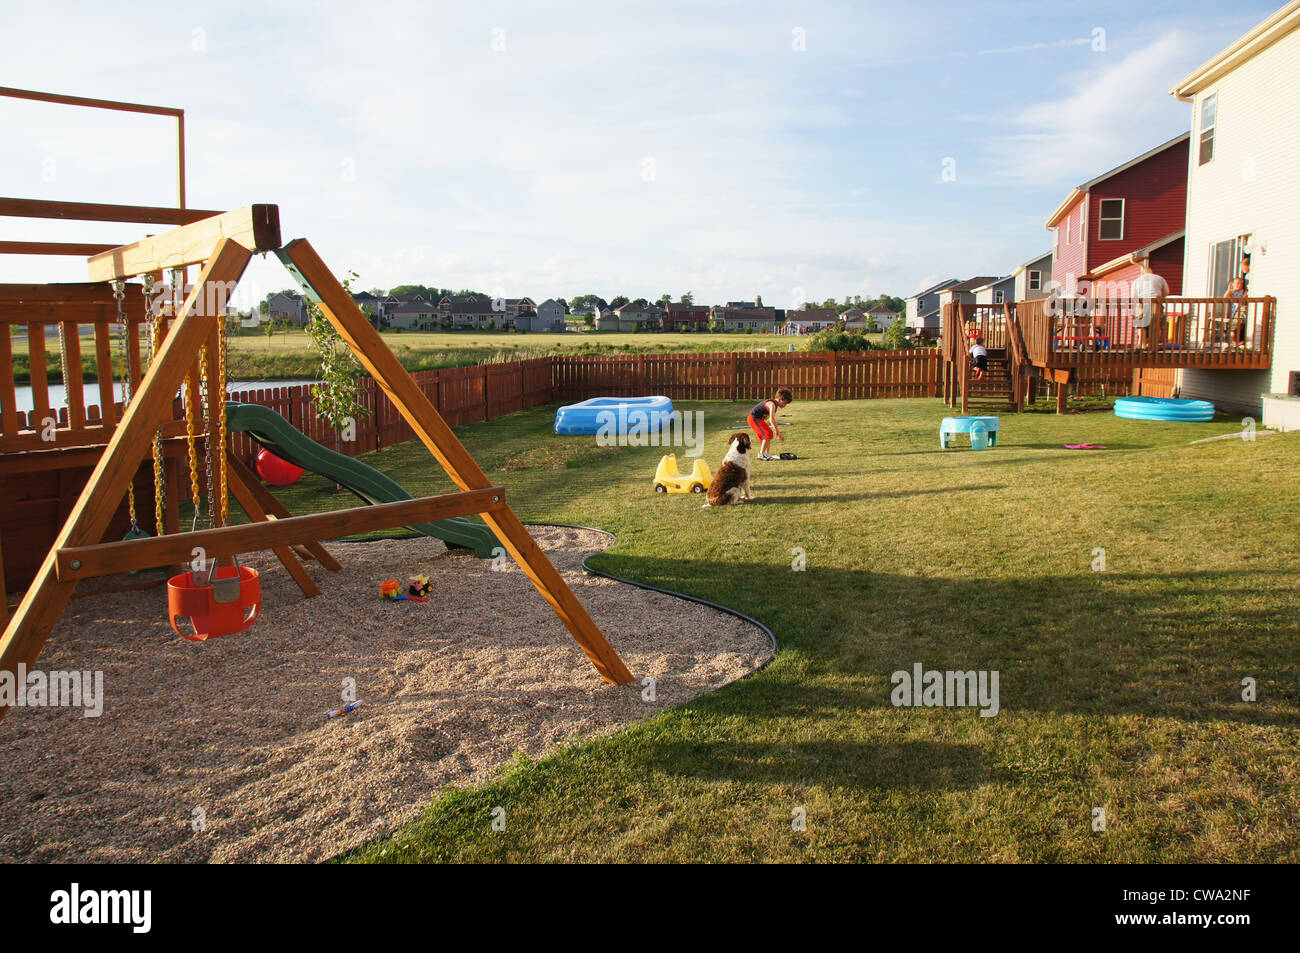 Backyard Playground Kids Dogs Urban Suburb Swing Barbeque Pool Grass Lawn  Mowed Pristine Clean Plymouth